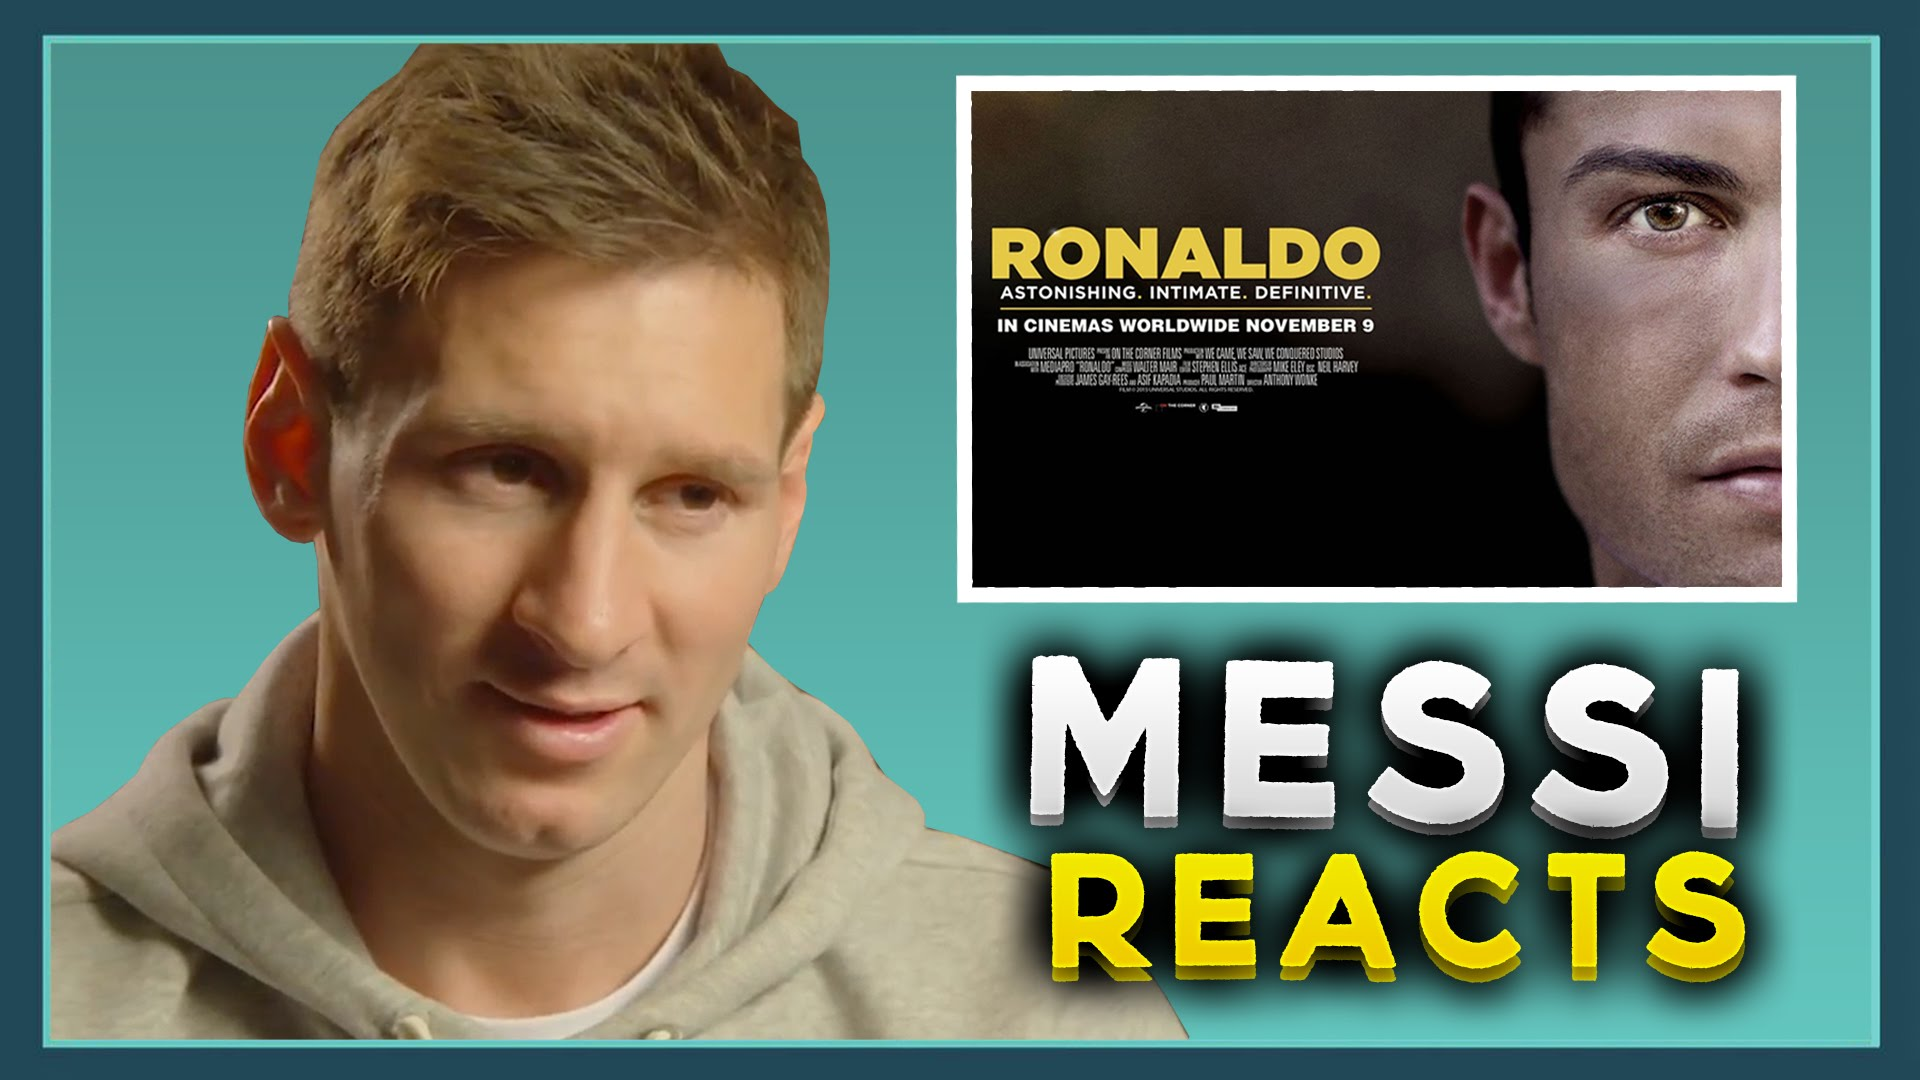 Messi Trolls Ronaldo The Film Trailer Watch Hilarious Spoof Video